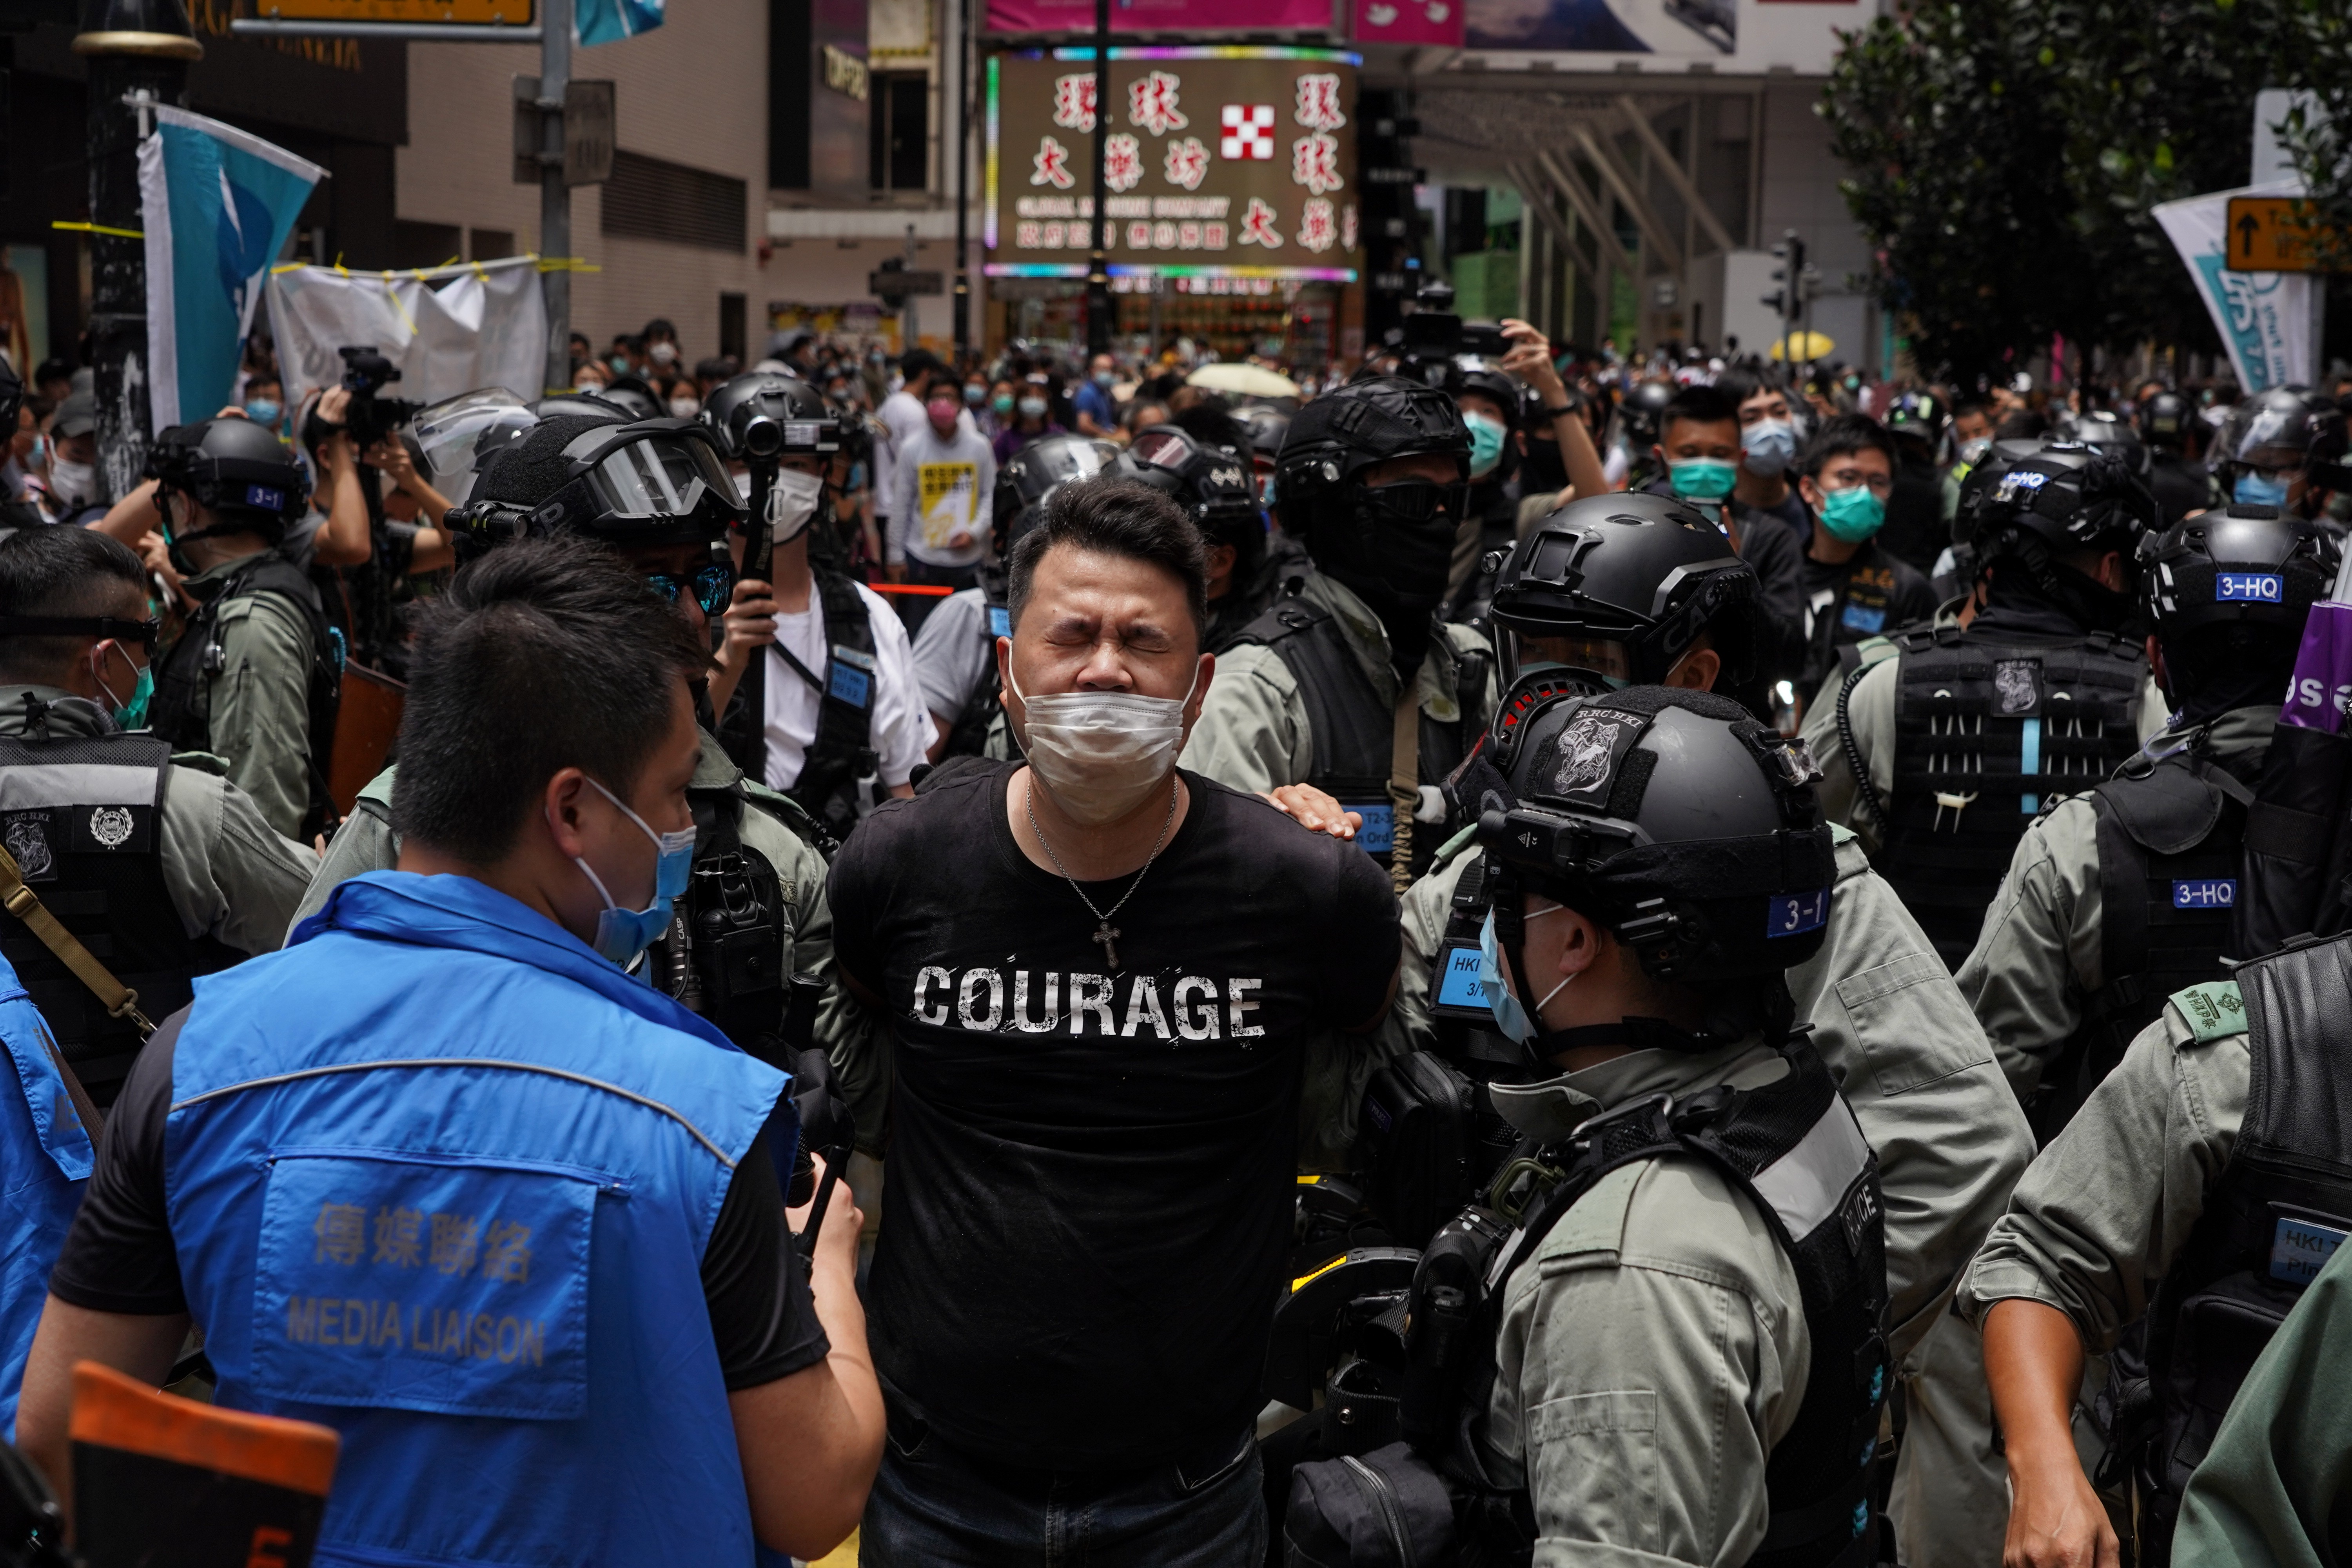 Andrew Wan, a pro-democracy lawmaker, is arrested by riot police during a protest in Hong Kong on July 1, 2020.